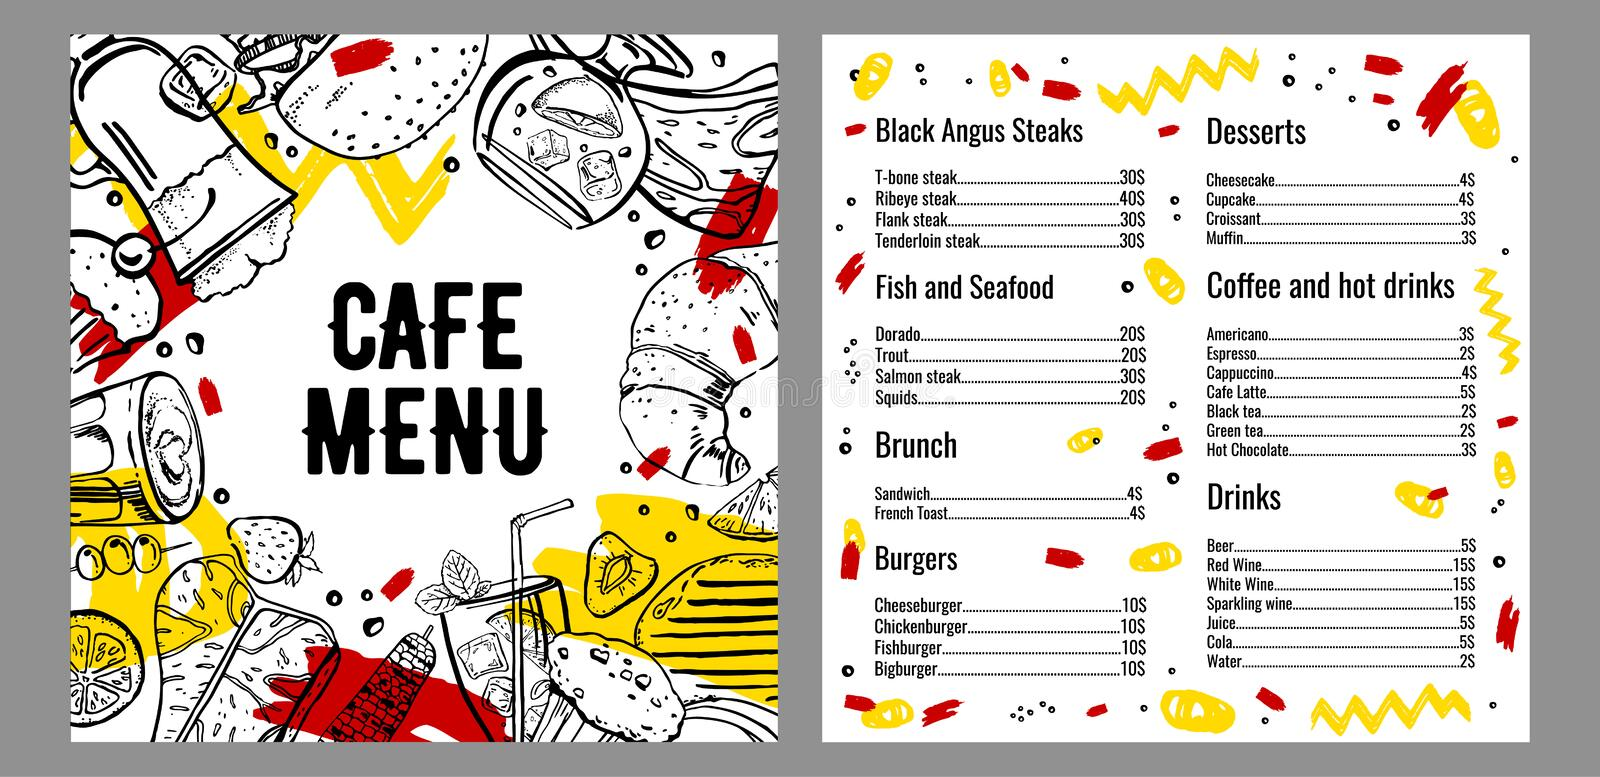 Cafe menu two page design template with list of steaks, fish, burgers, drinks, coffee and deserts. Outline vector hand drawn sketch illustration with food on royalty free illustration